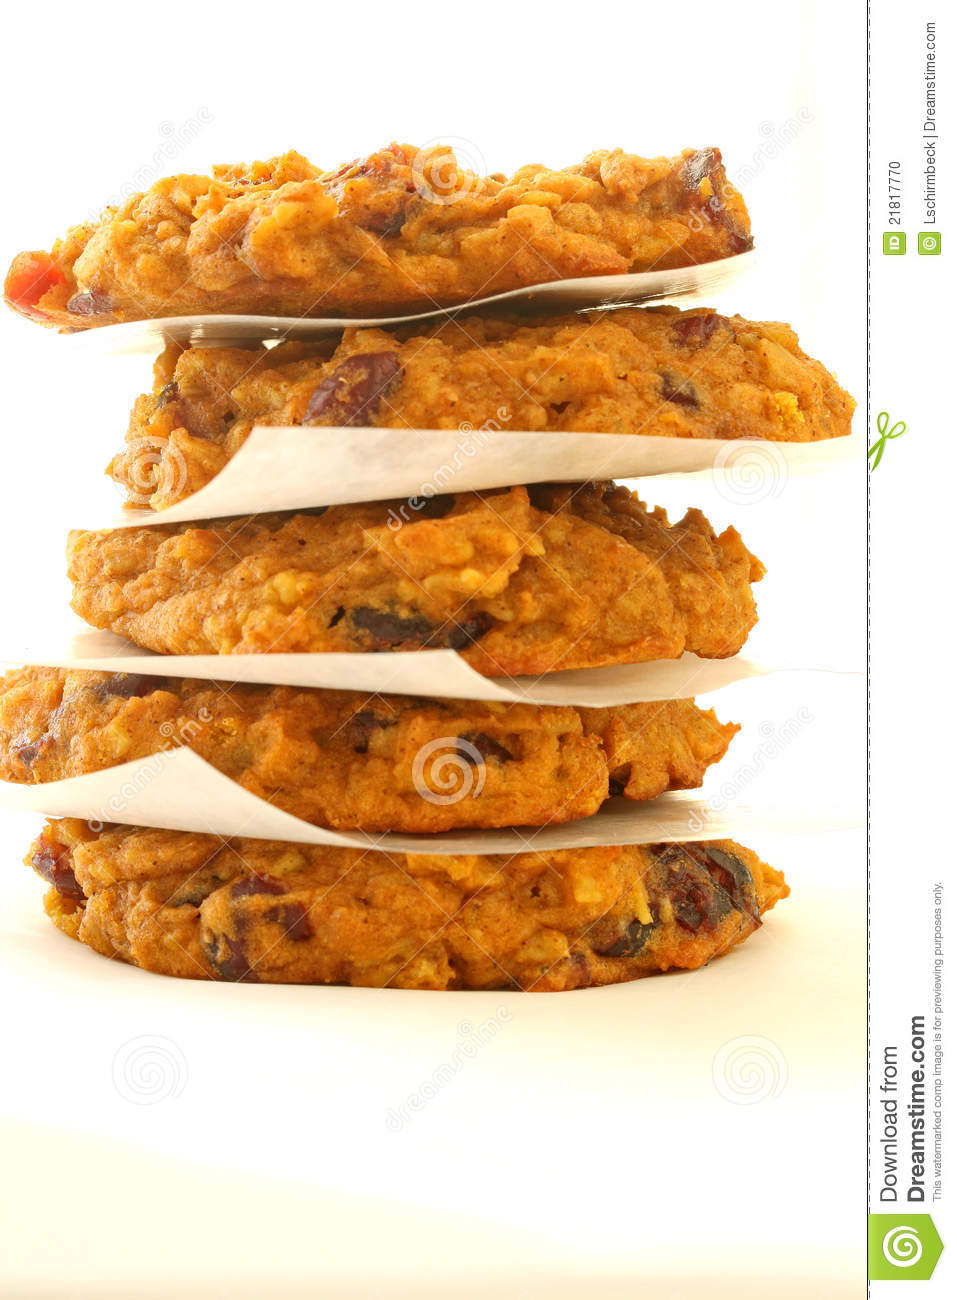 Pumpkin Cranberry Oatmeal Cookies Stock Photo - Image: 21817770